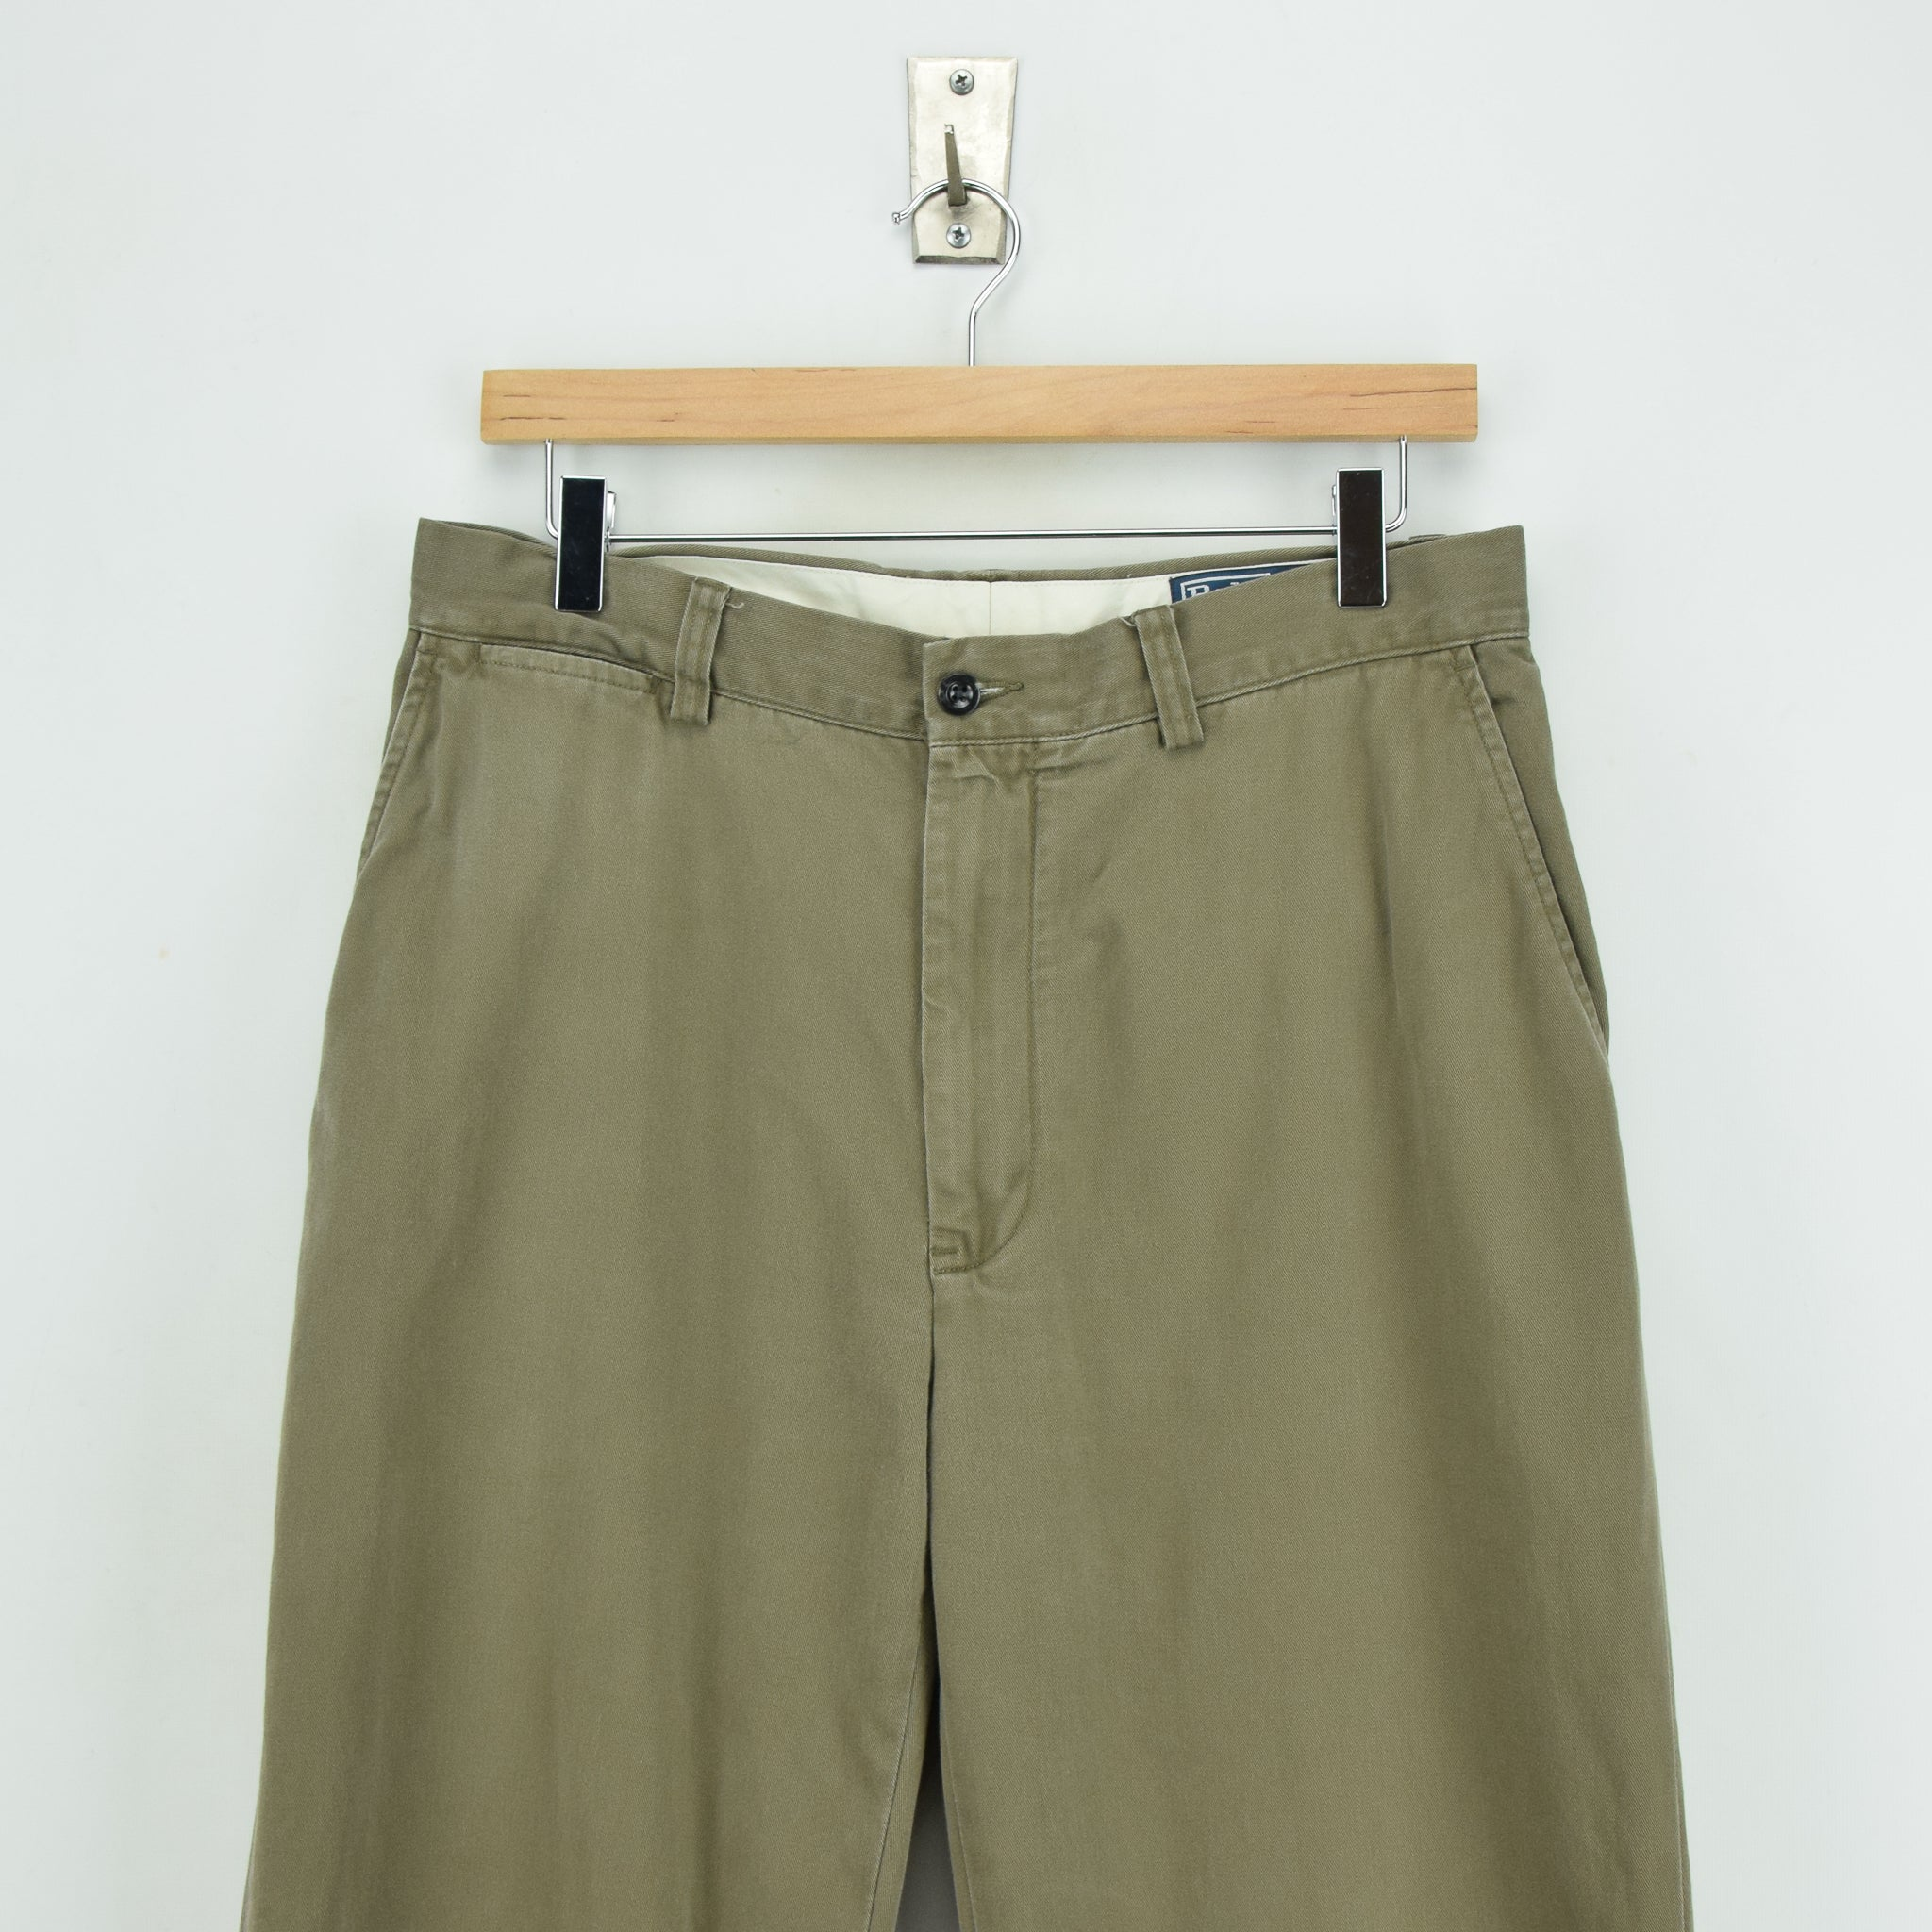 cbc50a2dc ... Ralph Lauren Polo Prospect Pant Chinos Stone Flat Front Trousers 30 W  30 L front waist ...